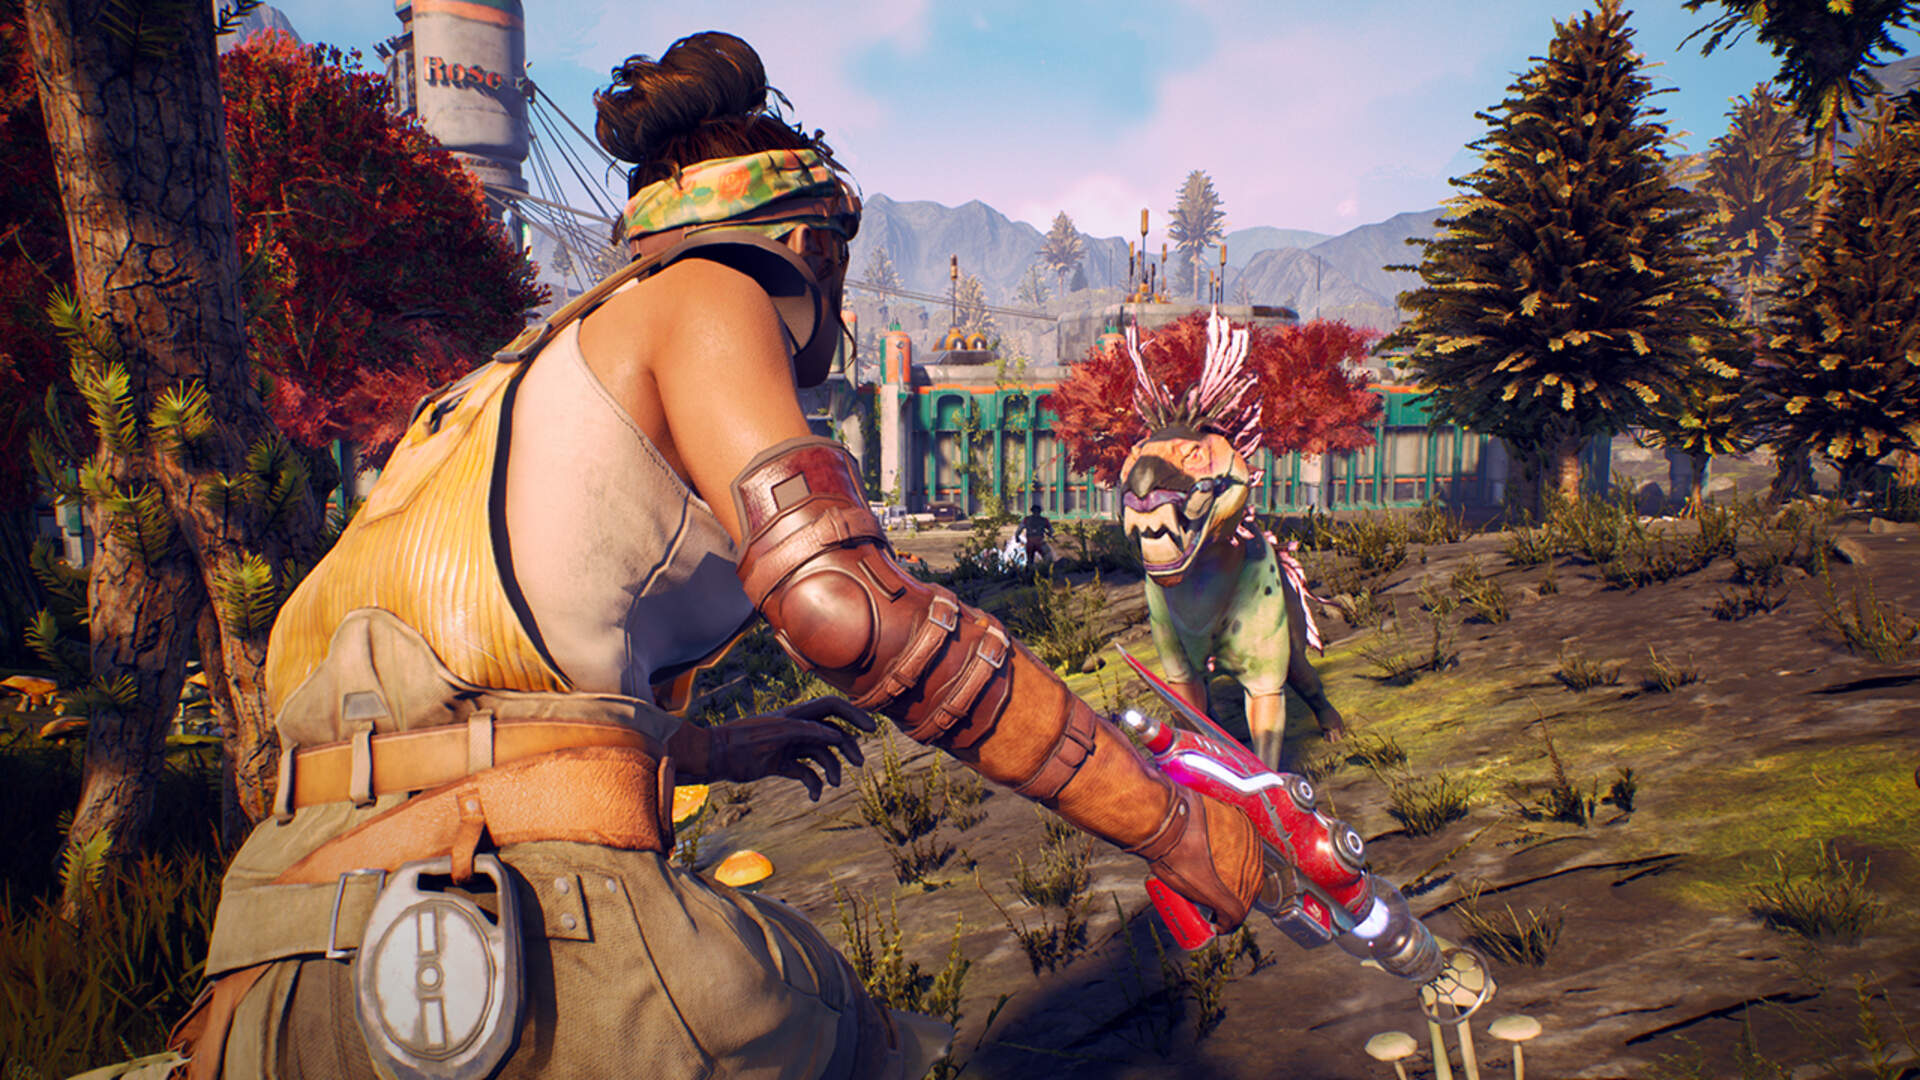 Ranking The Outer Worlds' Companions, From Parvati to Ugh... Felix